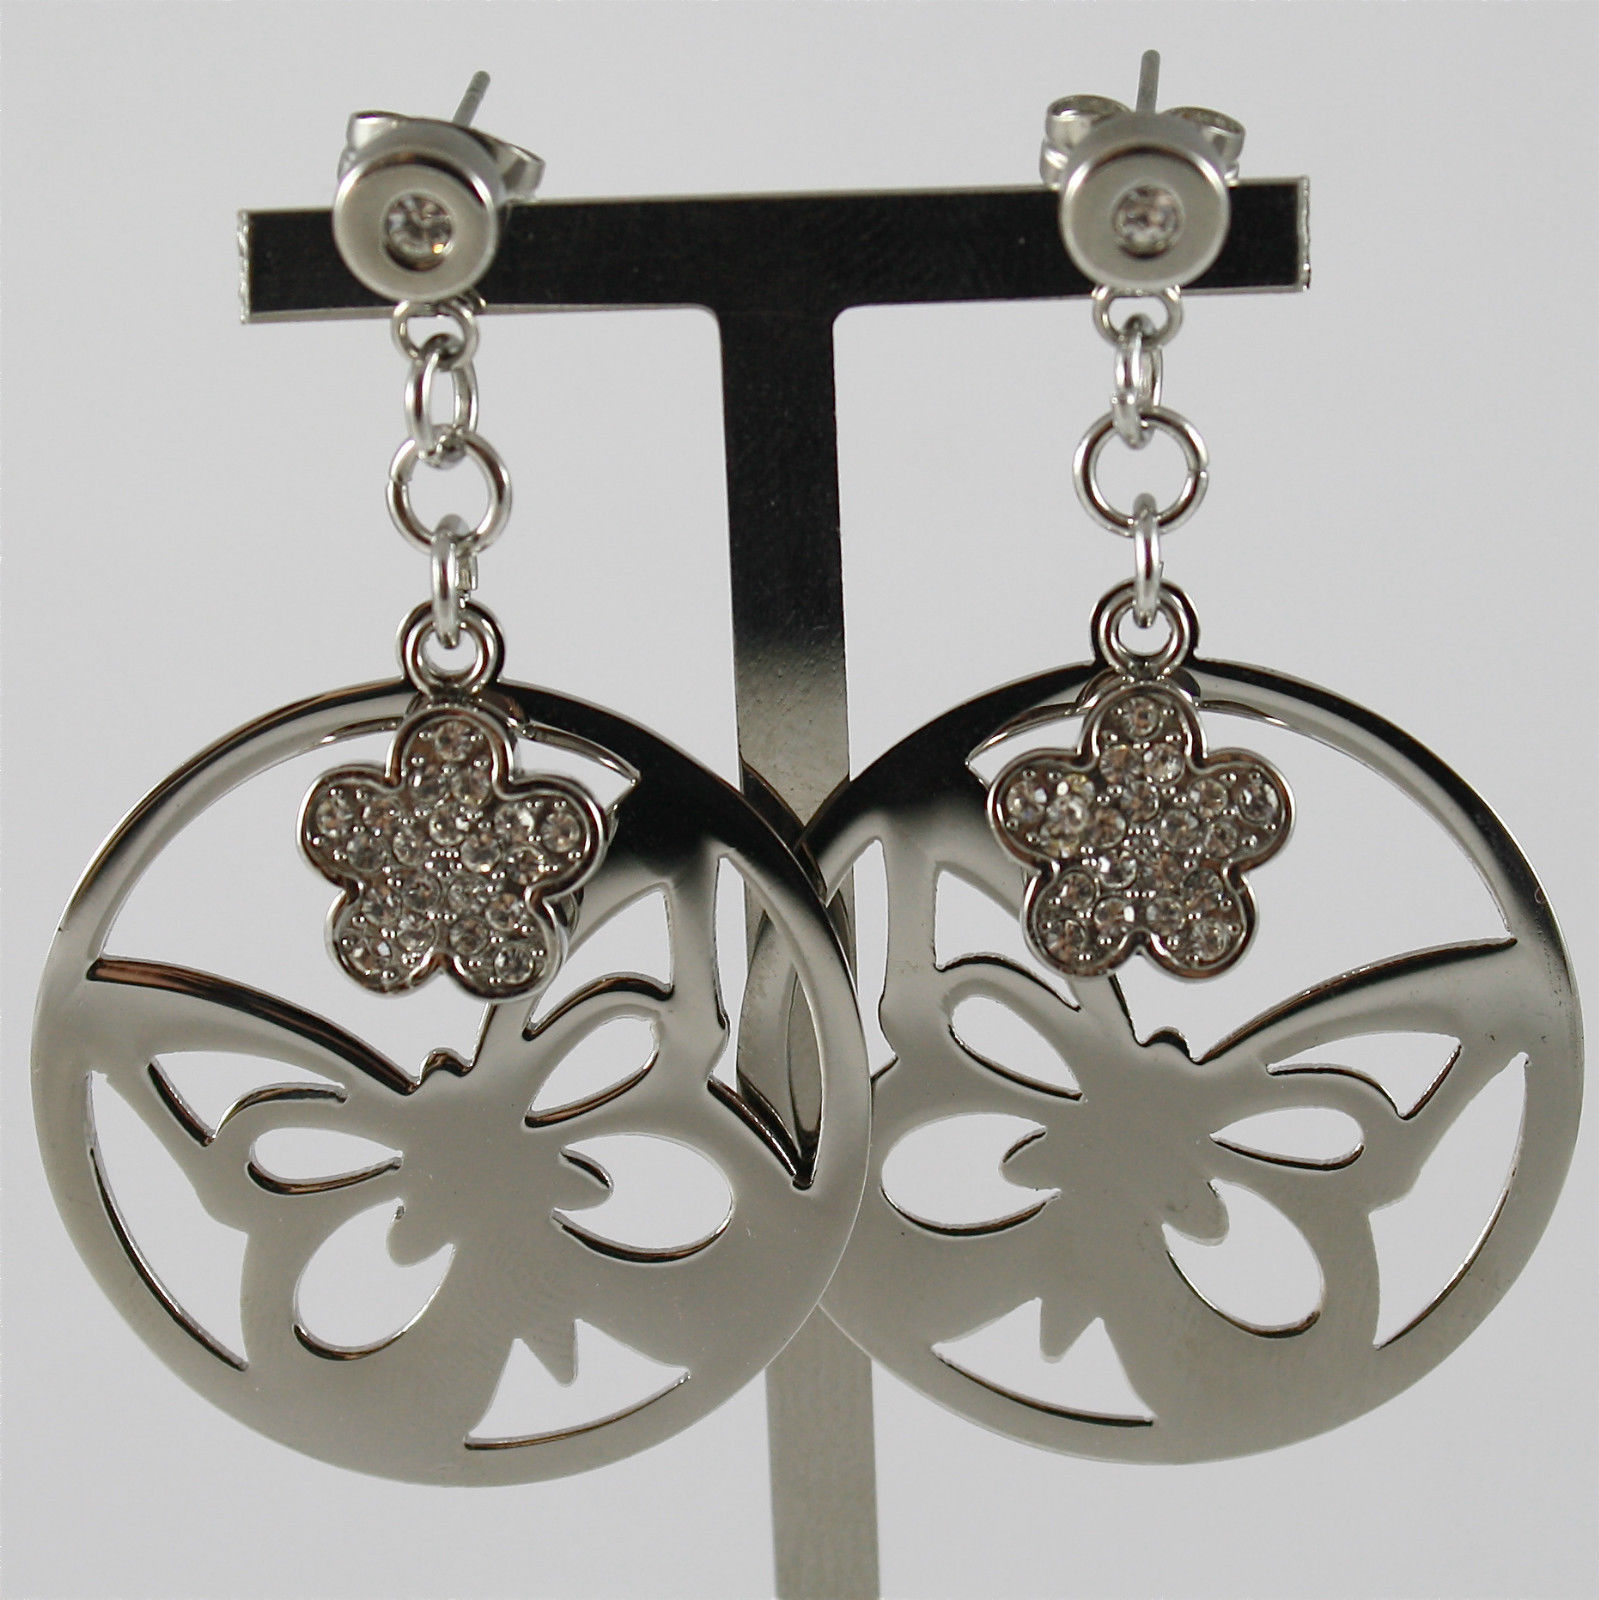 S'AGAPO' EARRINGS, 316L STEEL, BUTTERFLY AND FLOWER, FACETED CRYSTALS.